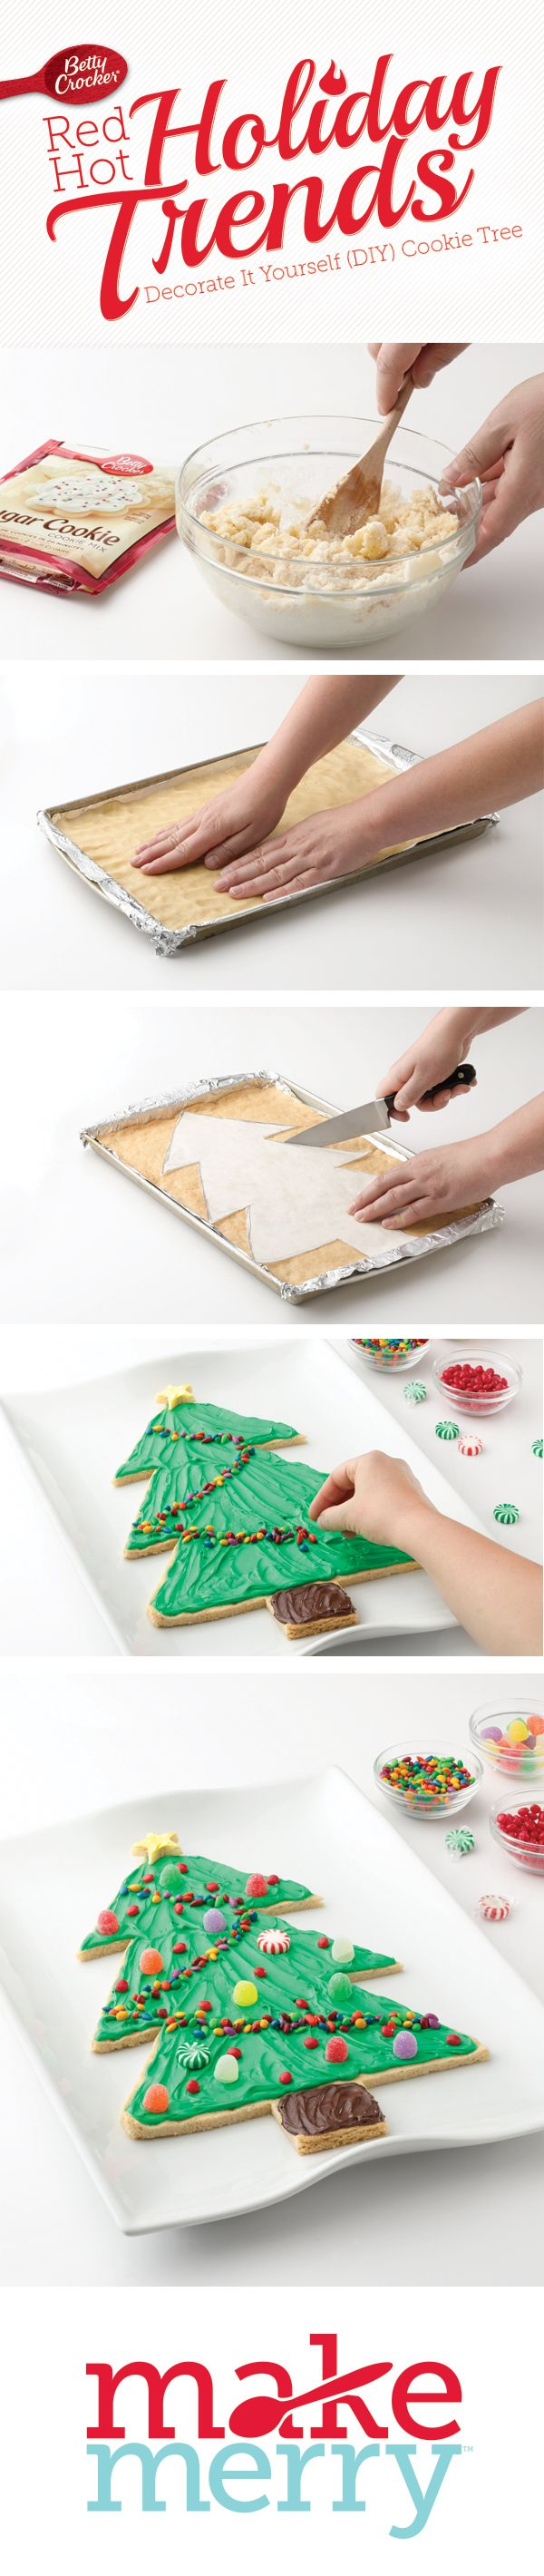 Red Hot Holiday Trend: DIY Cookie Tree How-To #MakeMerry. The directions are under this pin. Enjoy!